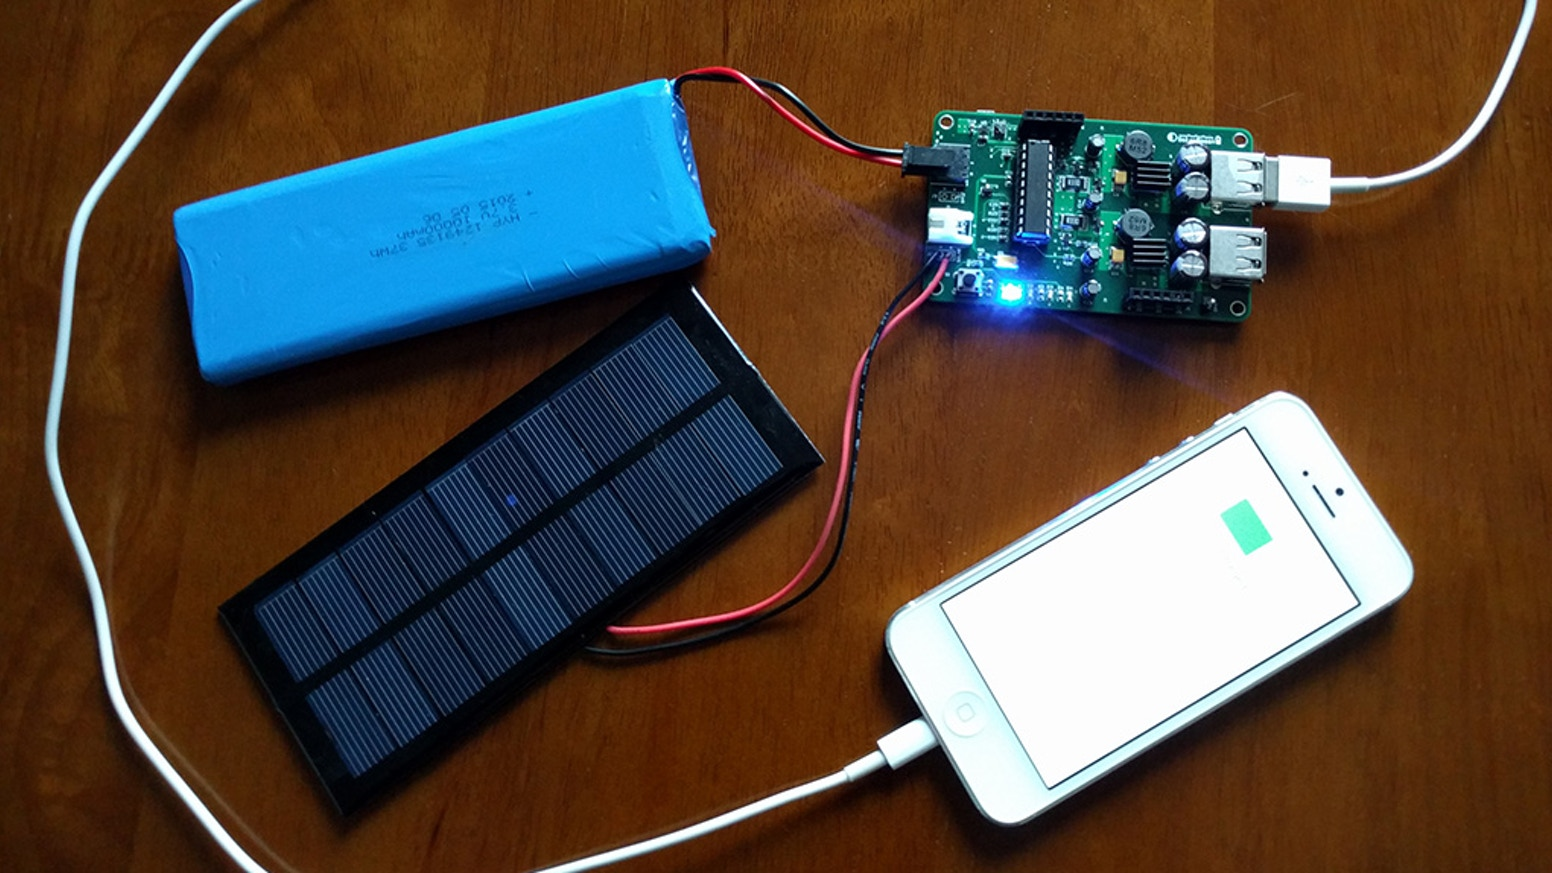 3a Solar Charge Control Circuit Schematic Solarboost Make Your Own Usb Mobile Charger By Hackenchip A Smart Interface That Allows You To Build Powerful And Portable Device